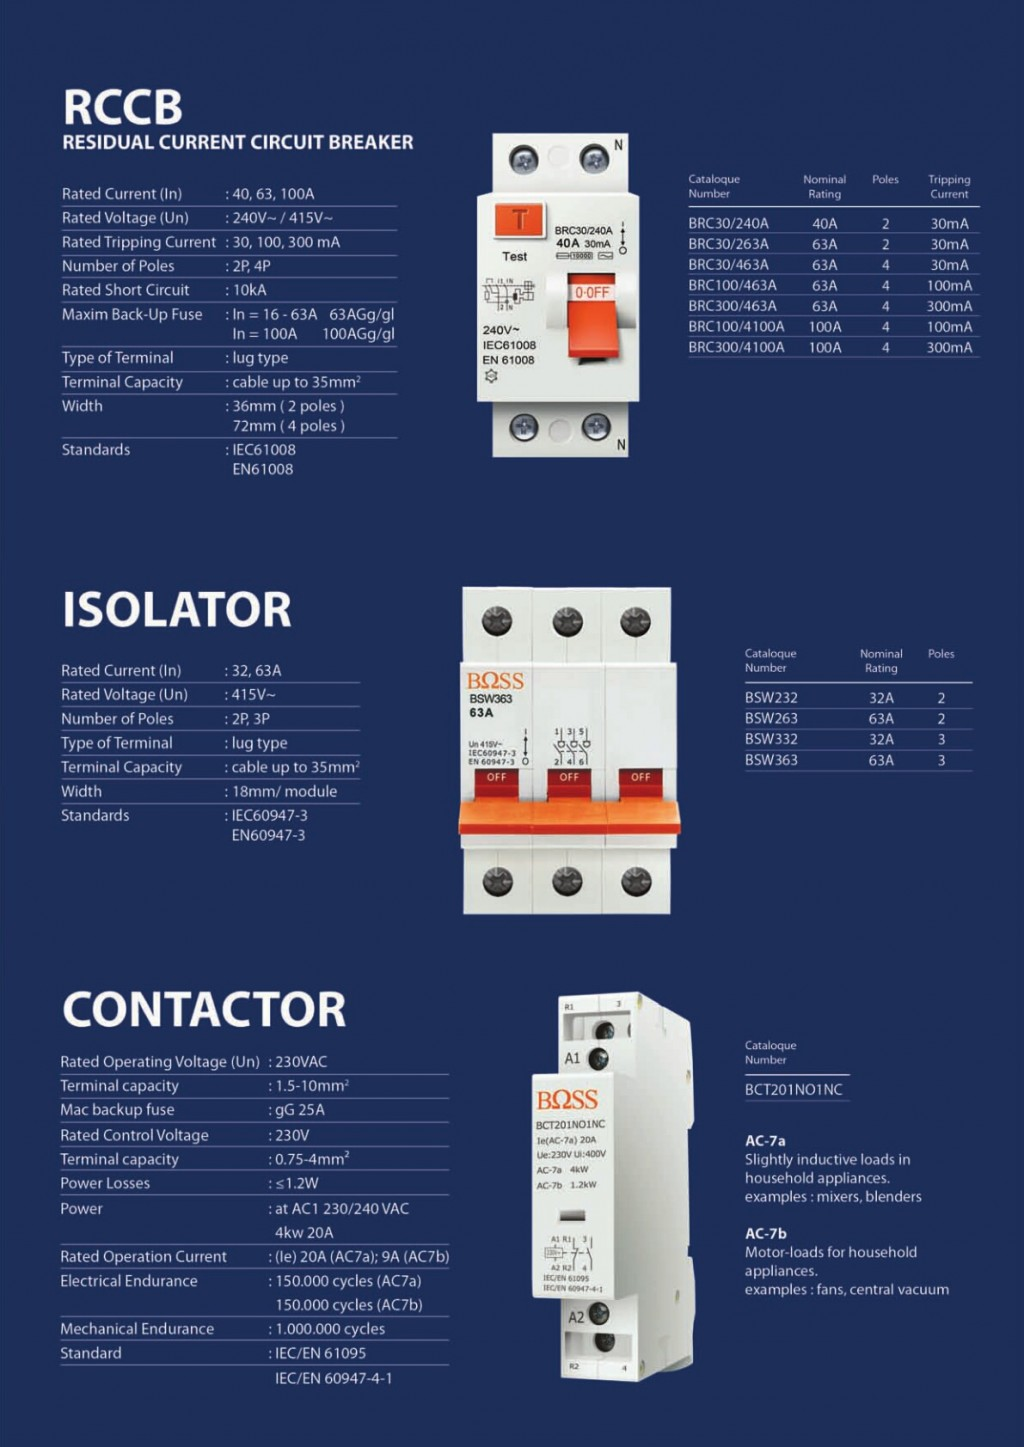 ACCESSORIES PANEL & BOX PANEL, MCB, CONTACTOR, RCCB & ISOLATOR BOSS, RCCB (Residual Current Circuit Breaker), Isolator, Contactor